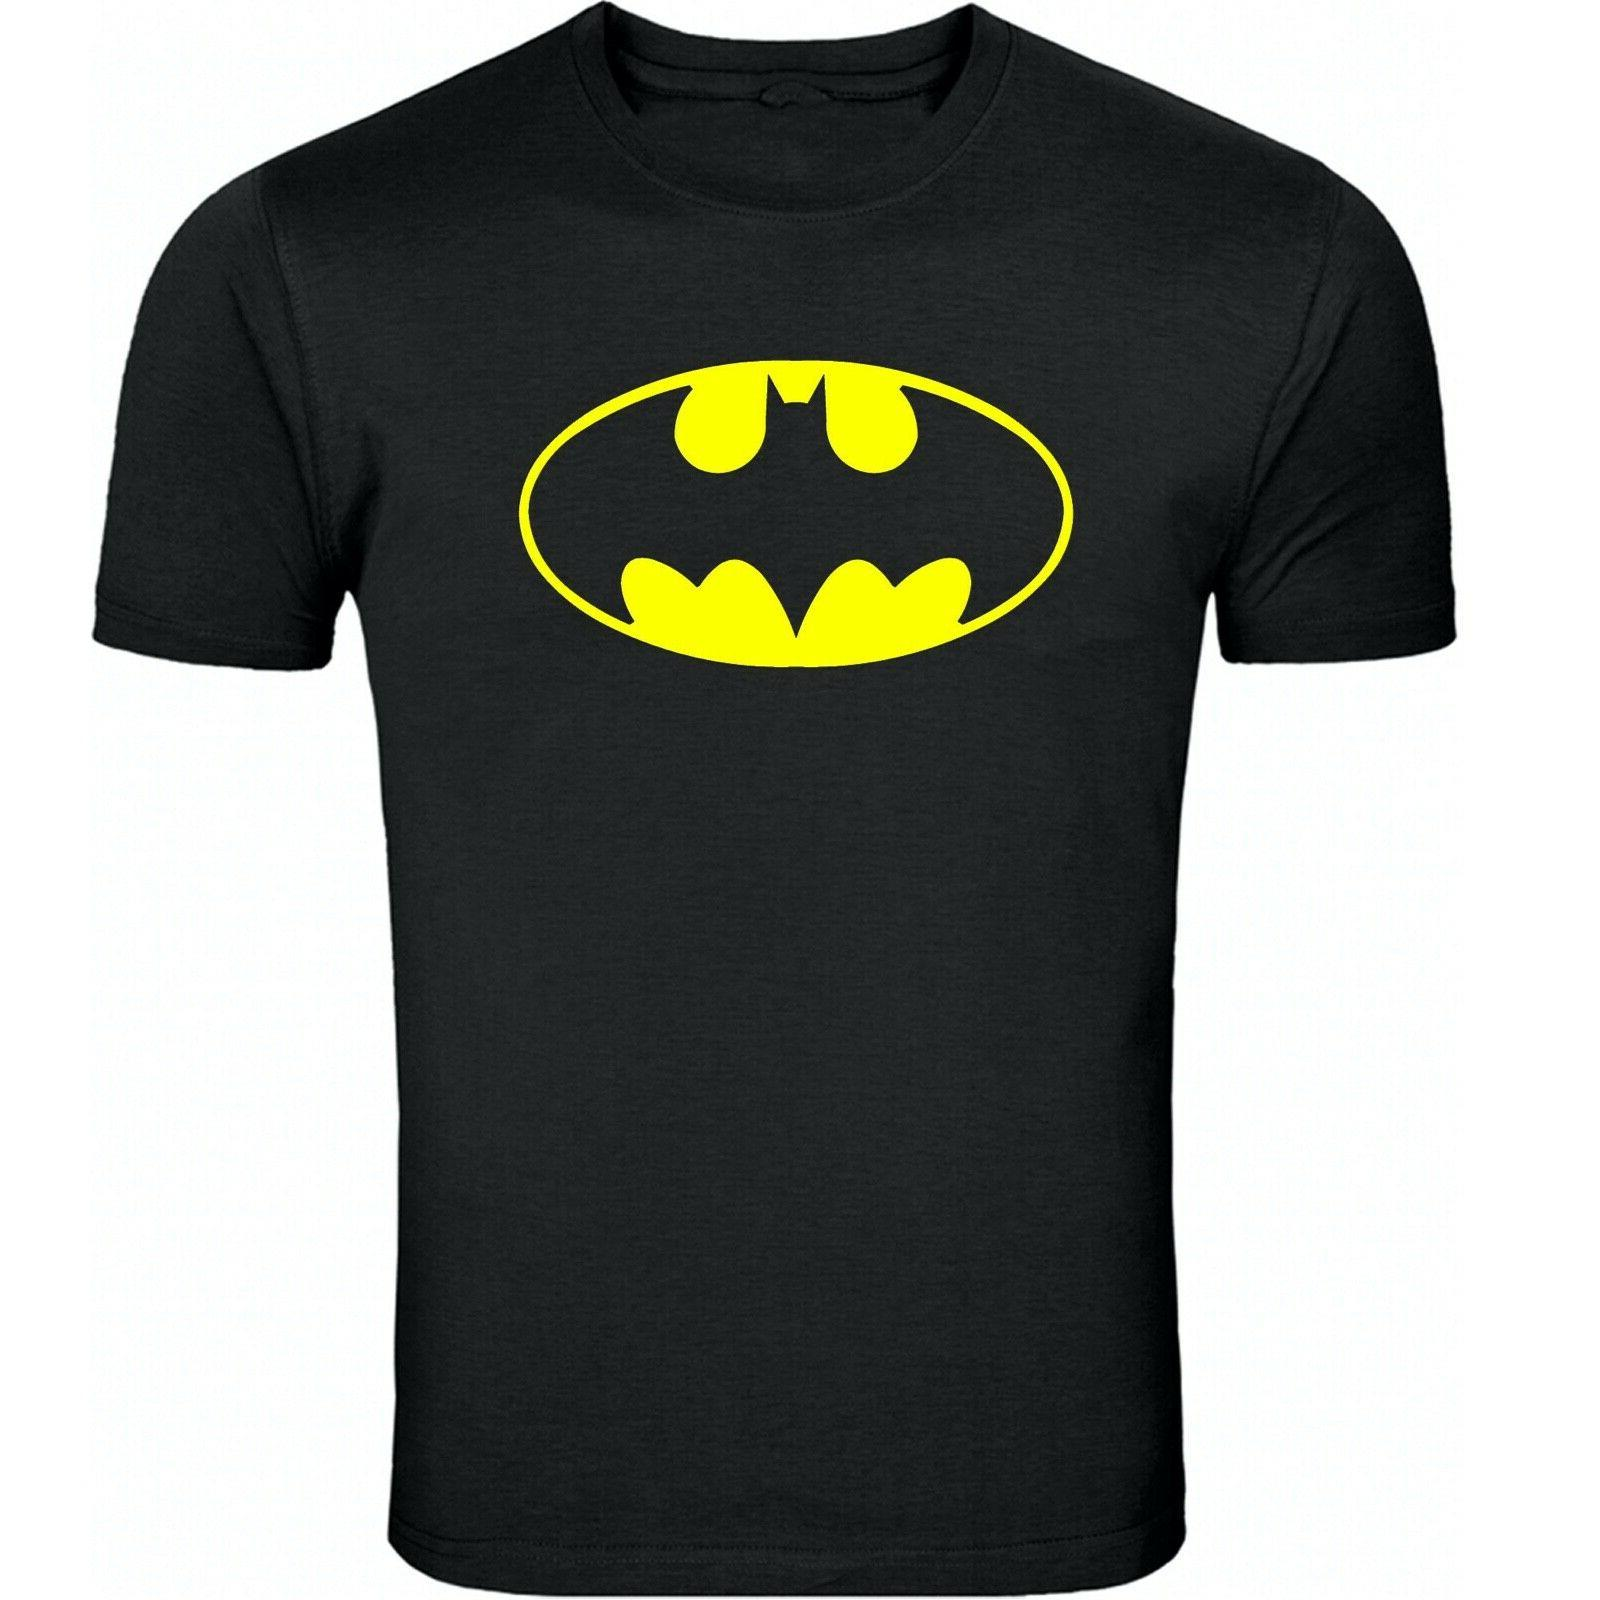 batman classic logo t shirt cotton blend